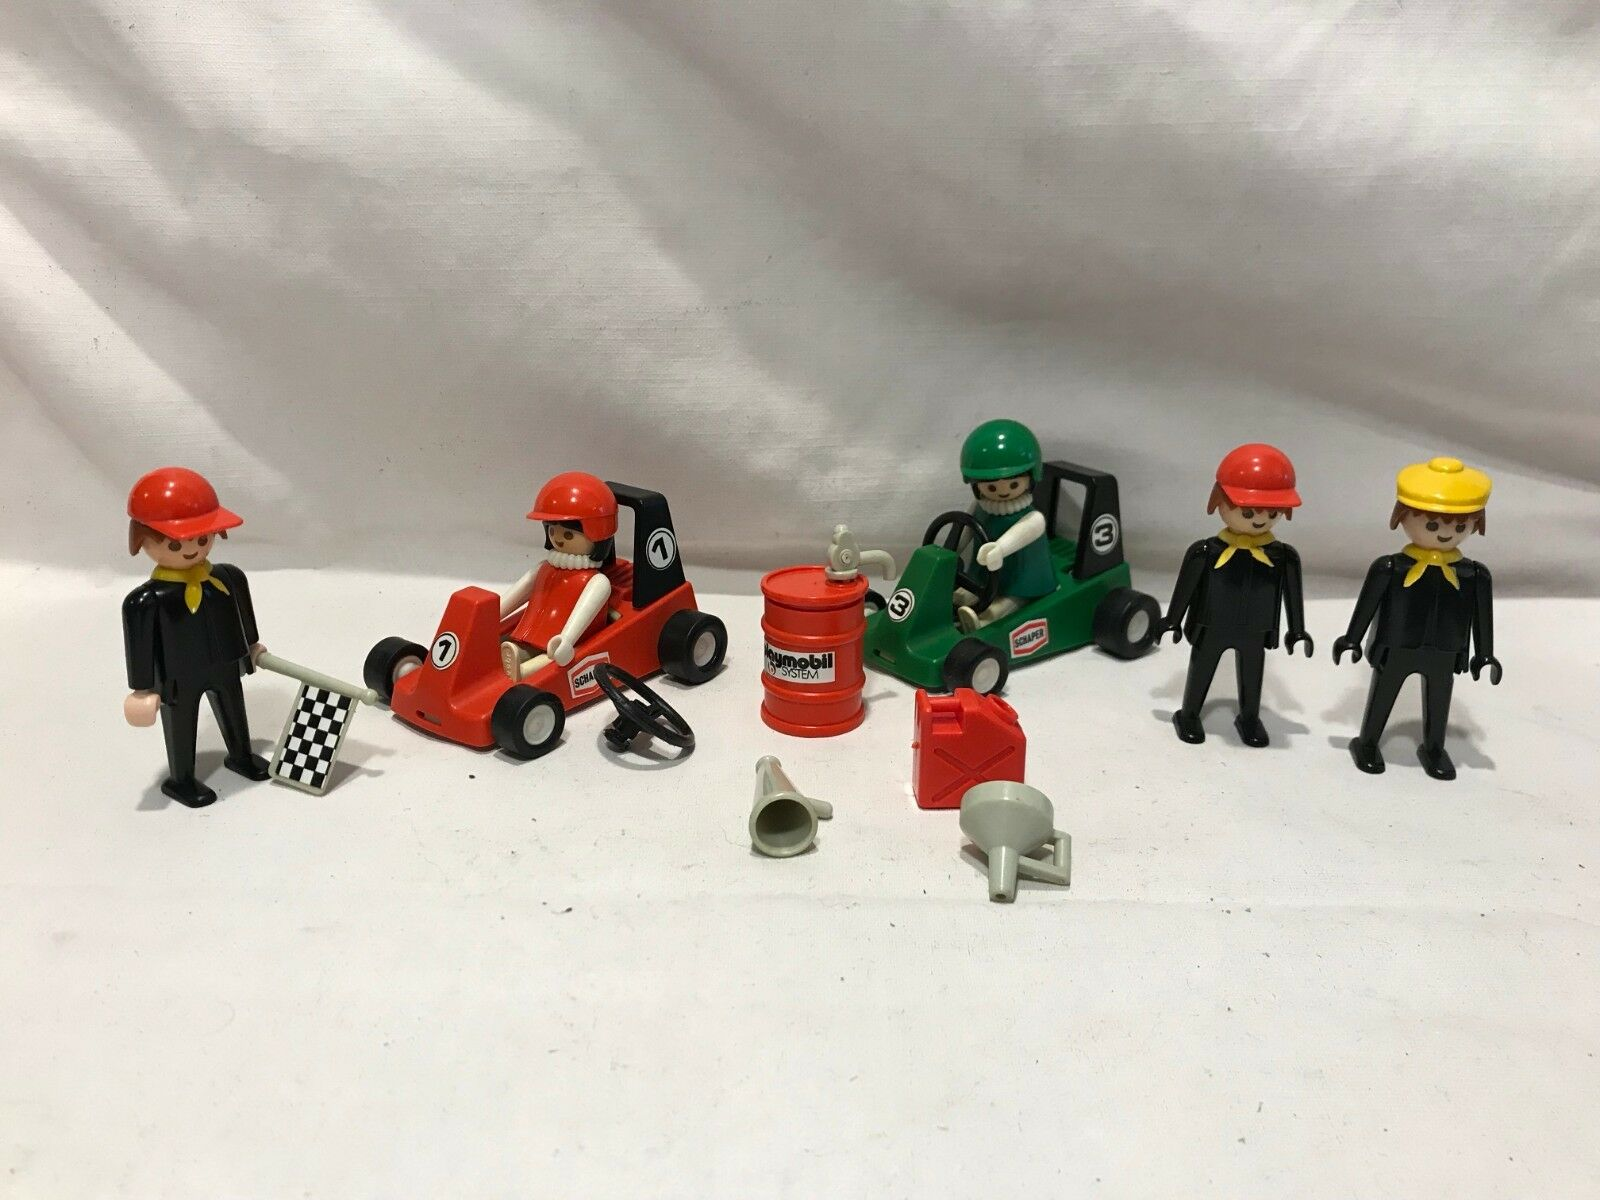 Playmobil Geobra Vintage 1979 DLX Race Car Set Schaper Cars Drivers Pit Crew Gas